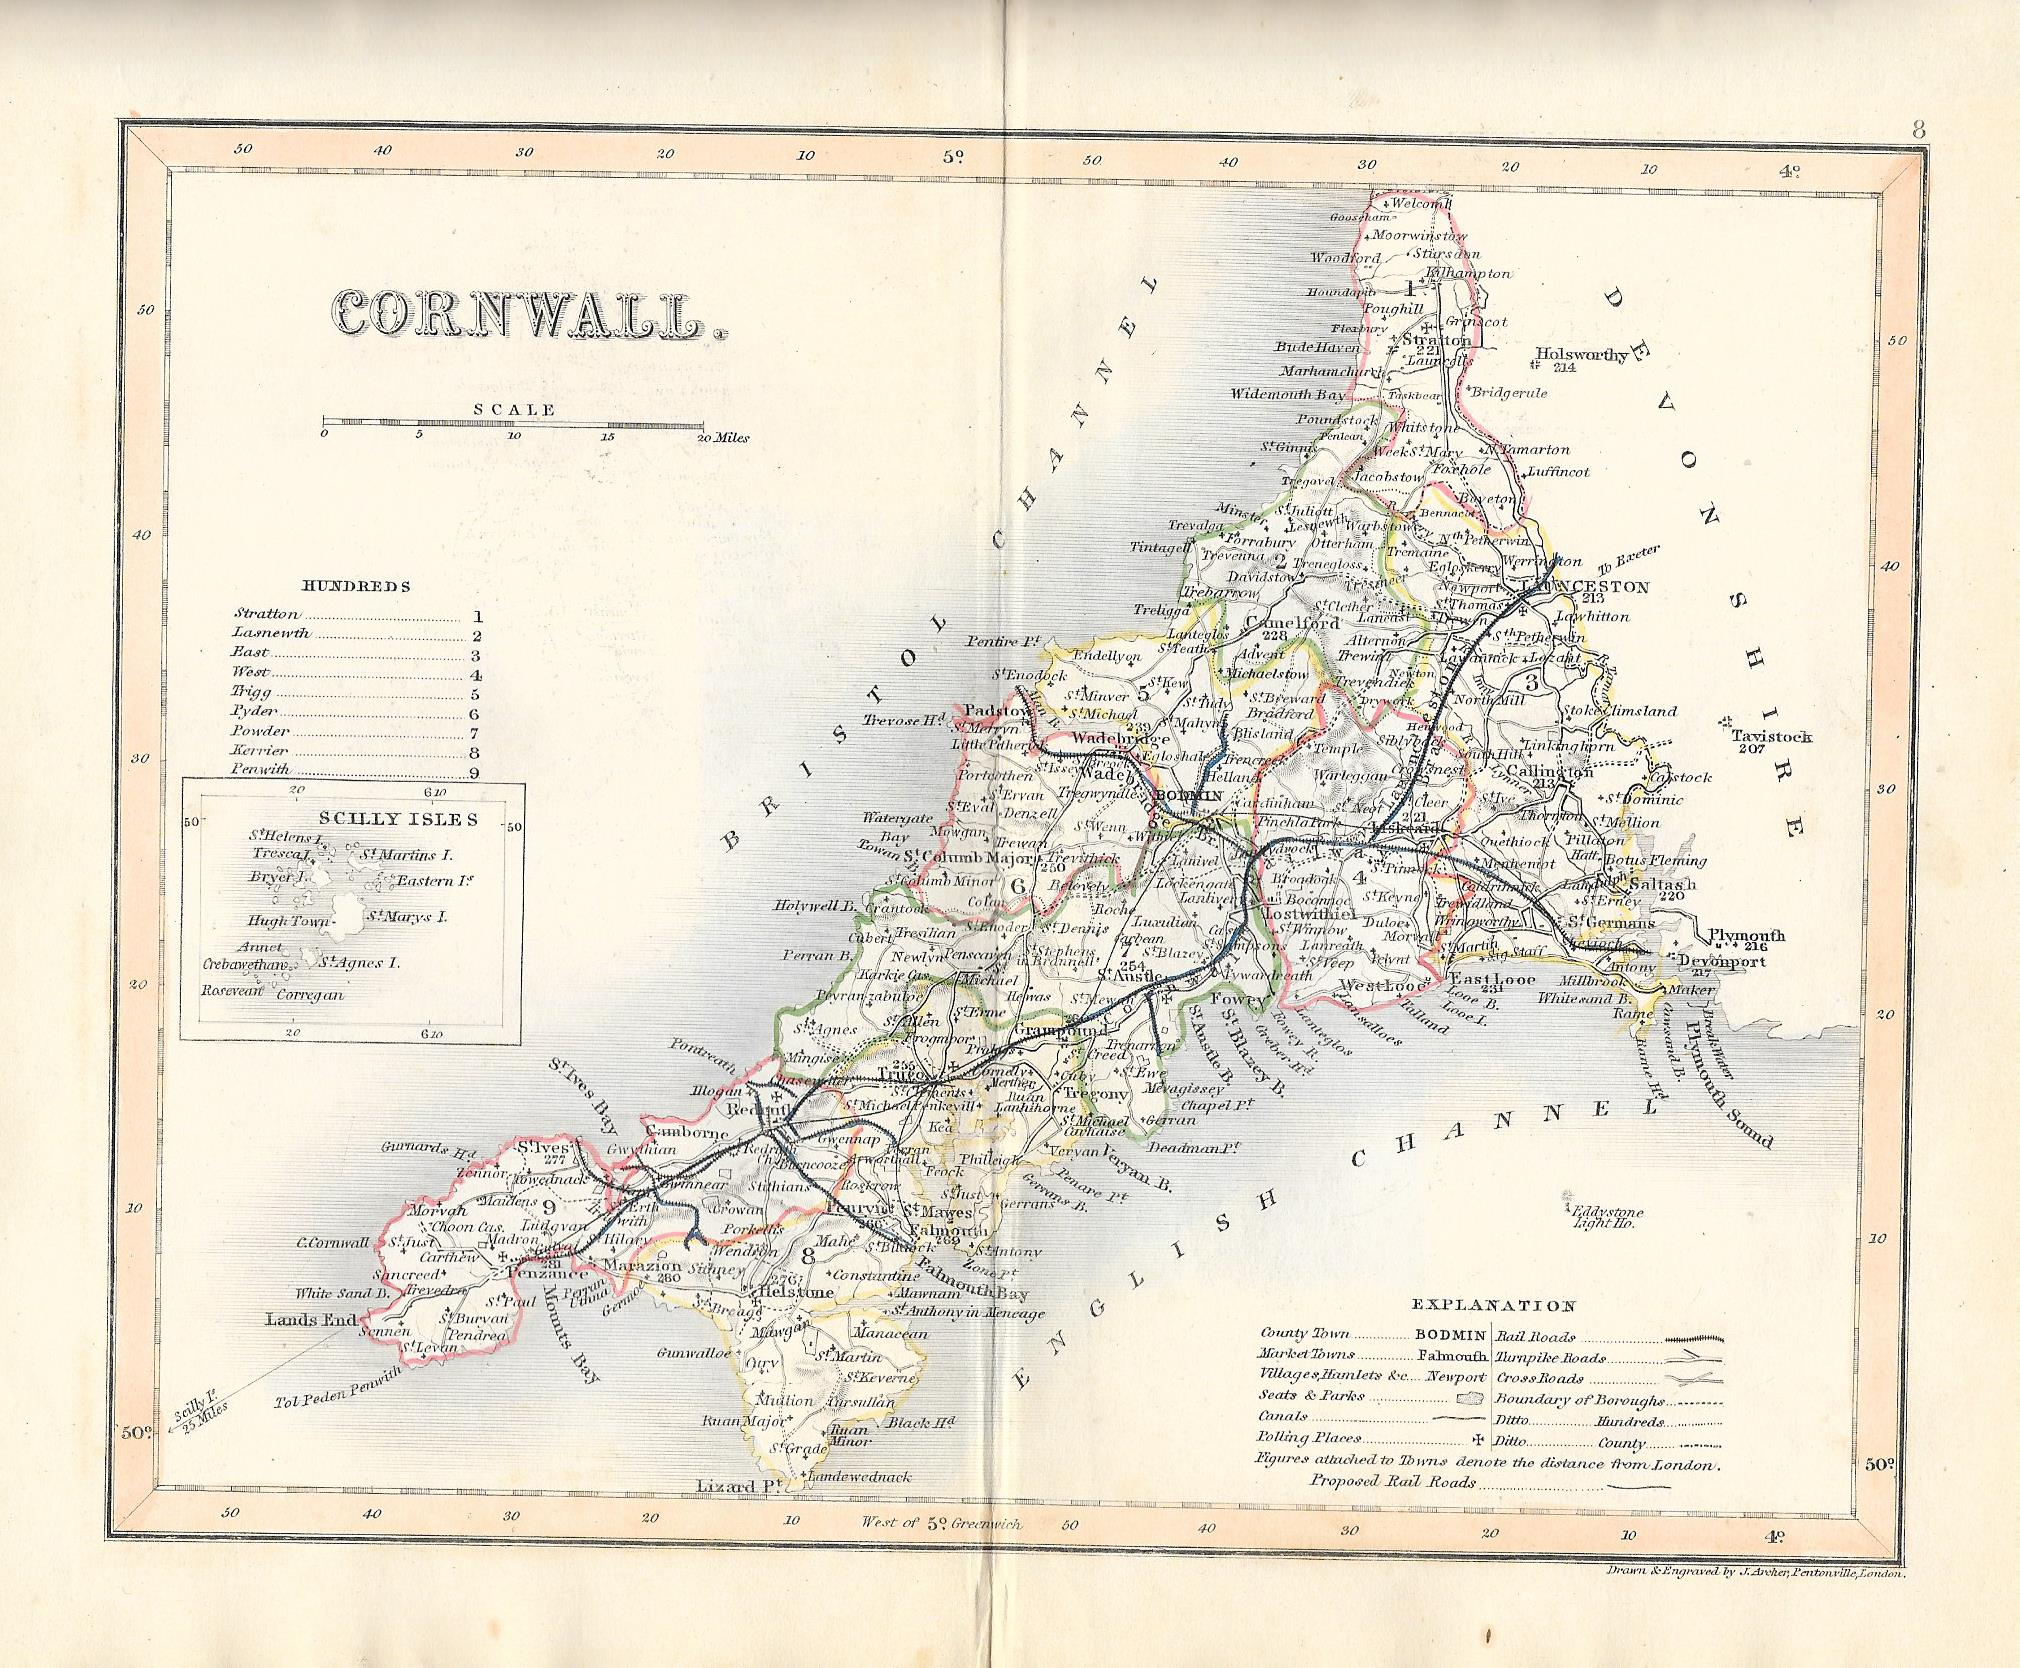 Cornwall antique map on wales map, stonehenge map, monroe woodbury map, isle of wight map, st. catharines map, stuyvesant map, dorsetshire map, england map, eden project map, united kingdom map, derbyshire map, scotland map, ontario highway 401 map, wychwood map, western highlands map, devon map, quebec map, rondout valley map, carlisle map, orkney islands map,